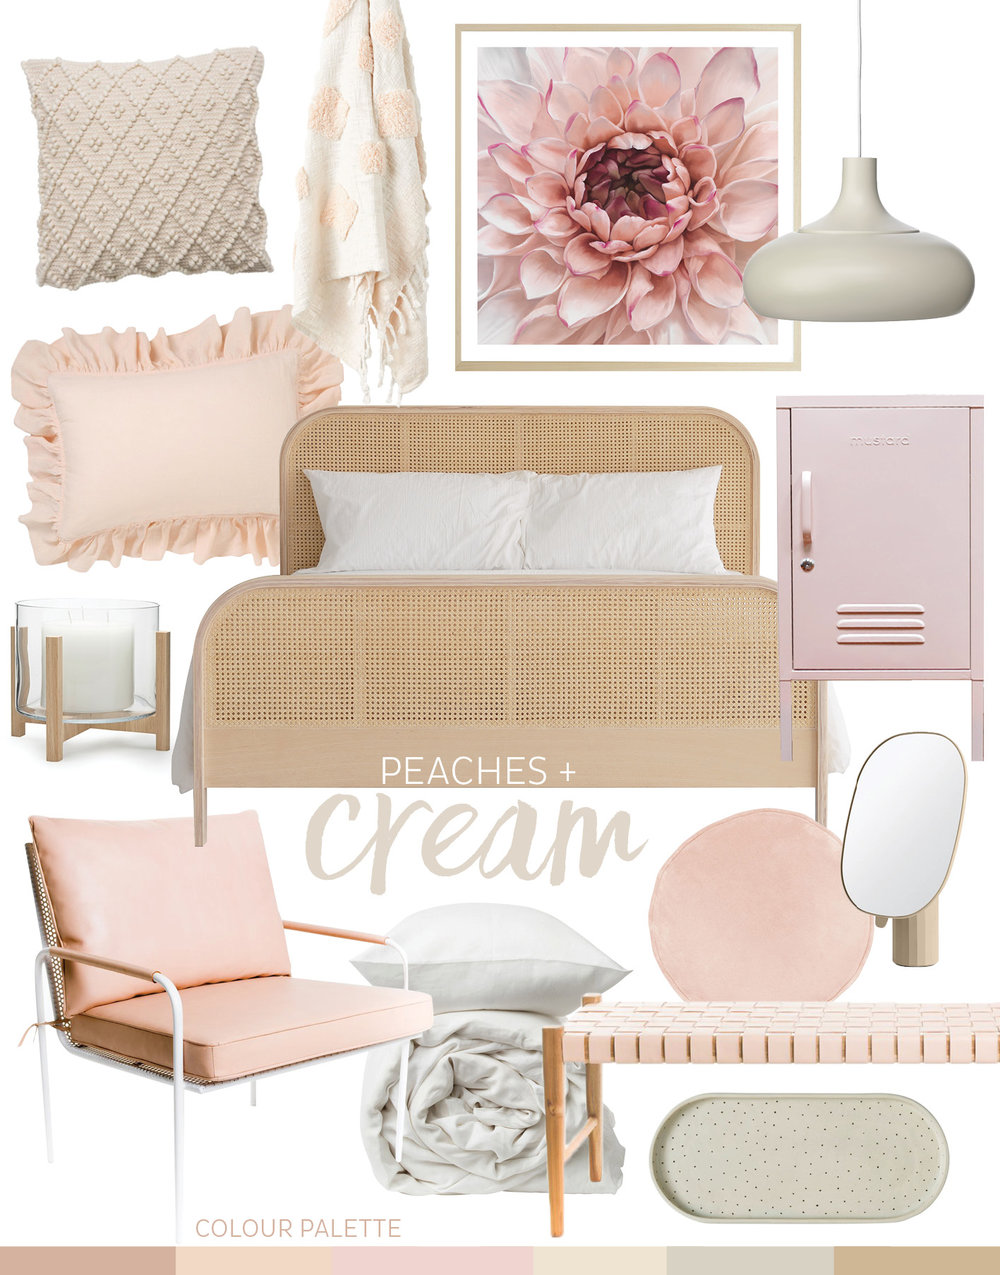 adore_home_magazine_blog_peaches_cream_homewares_soft_scandi_contemporary_bedroom_style_trend_edit_nude_peach_pink_tones.jpg